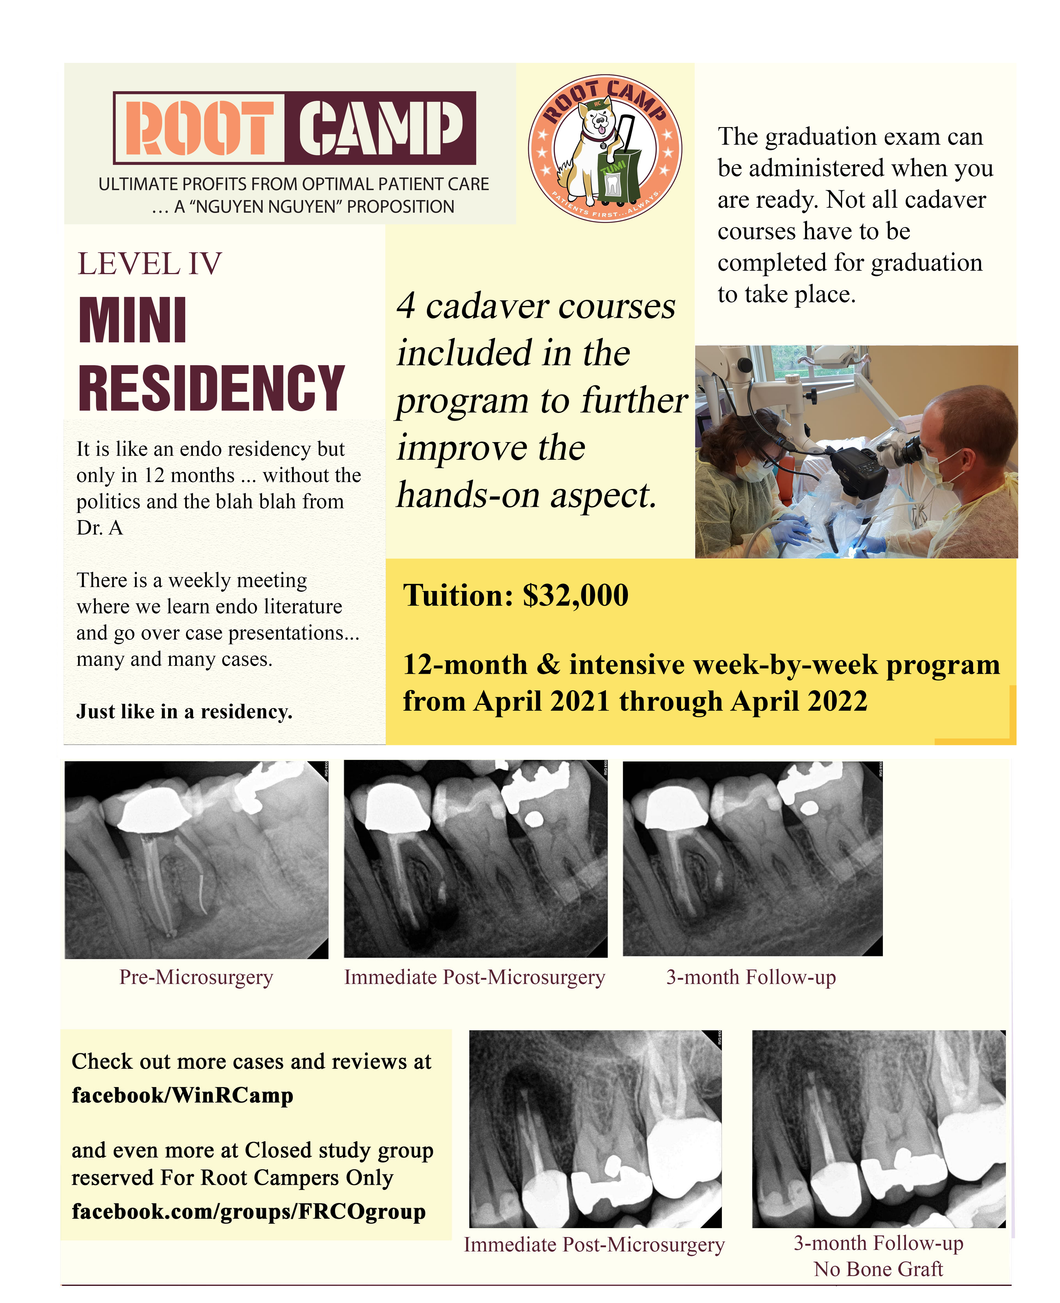 April 2021 through April 2022 - Endo mini-residency program